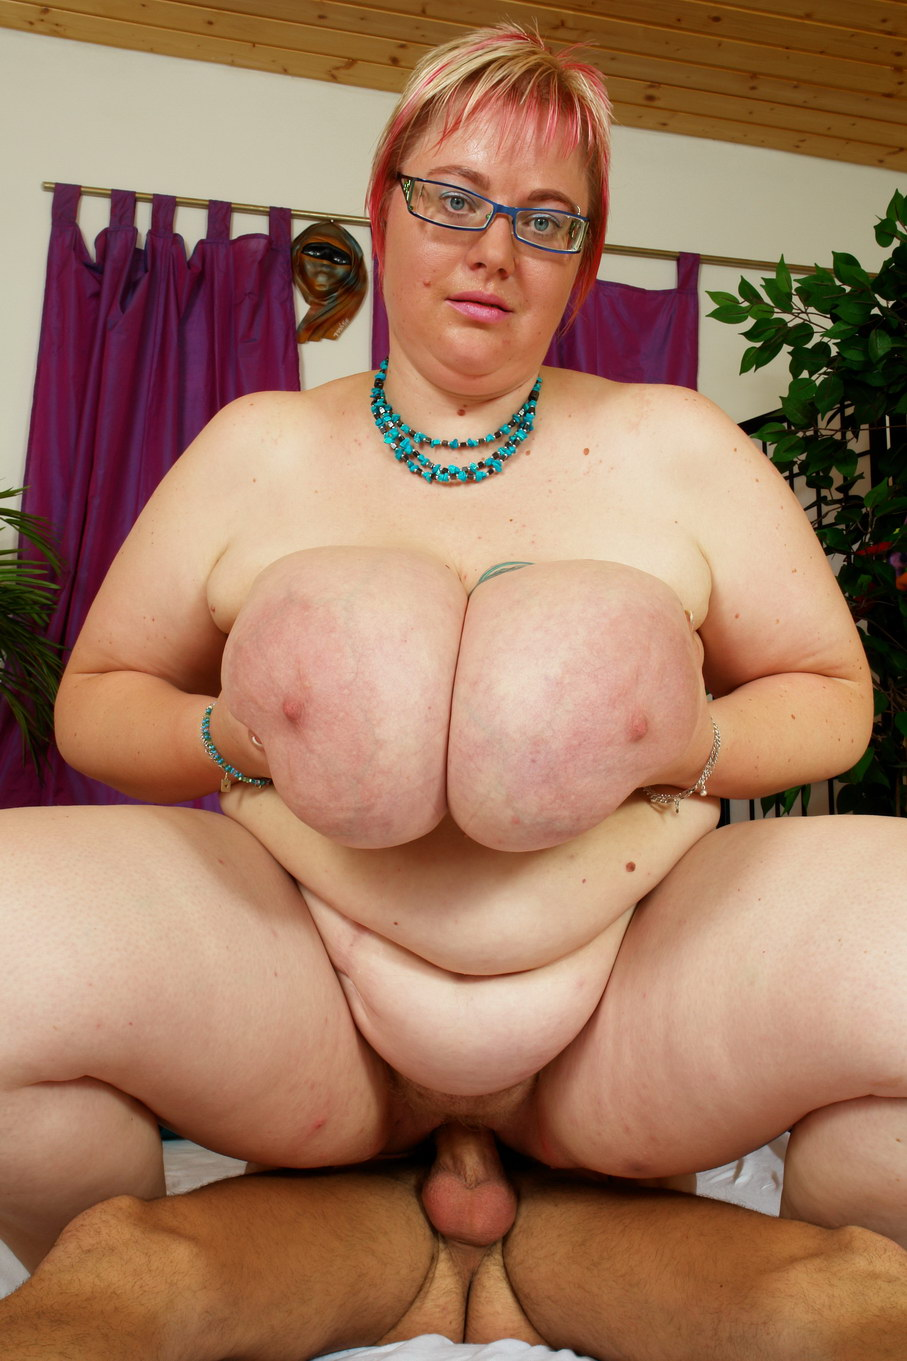 Nude fat photo woman